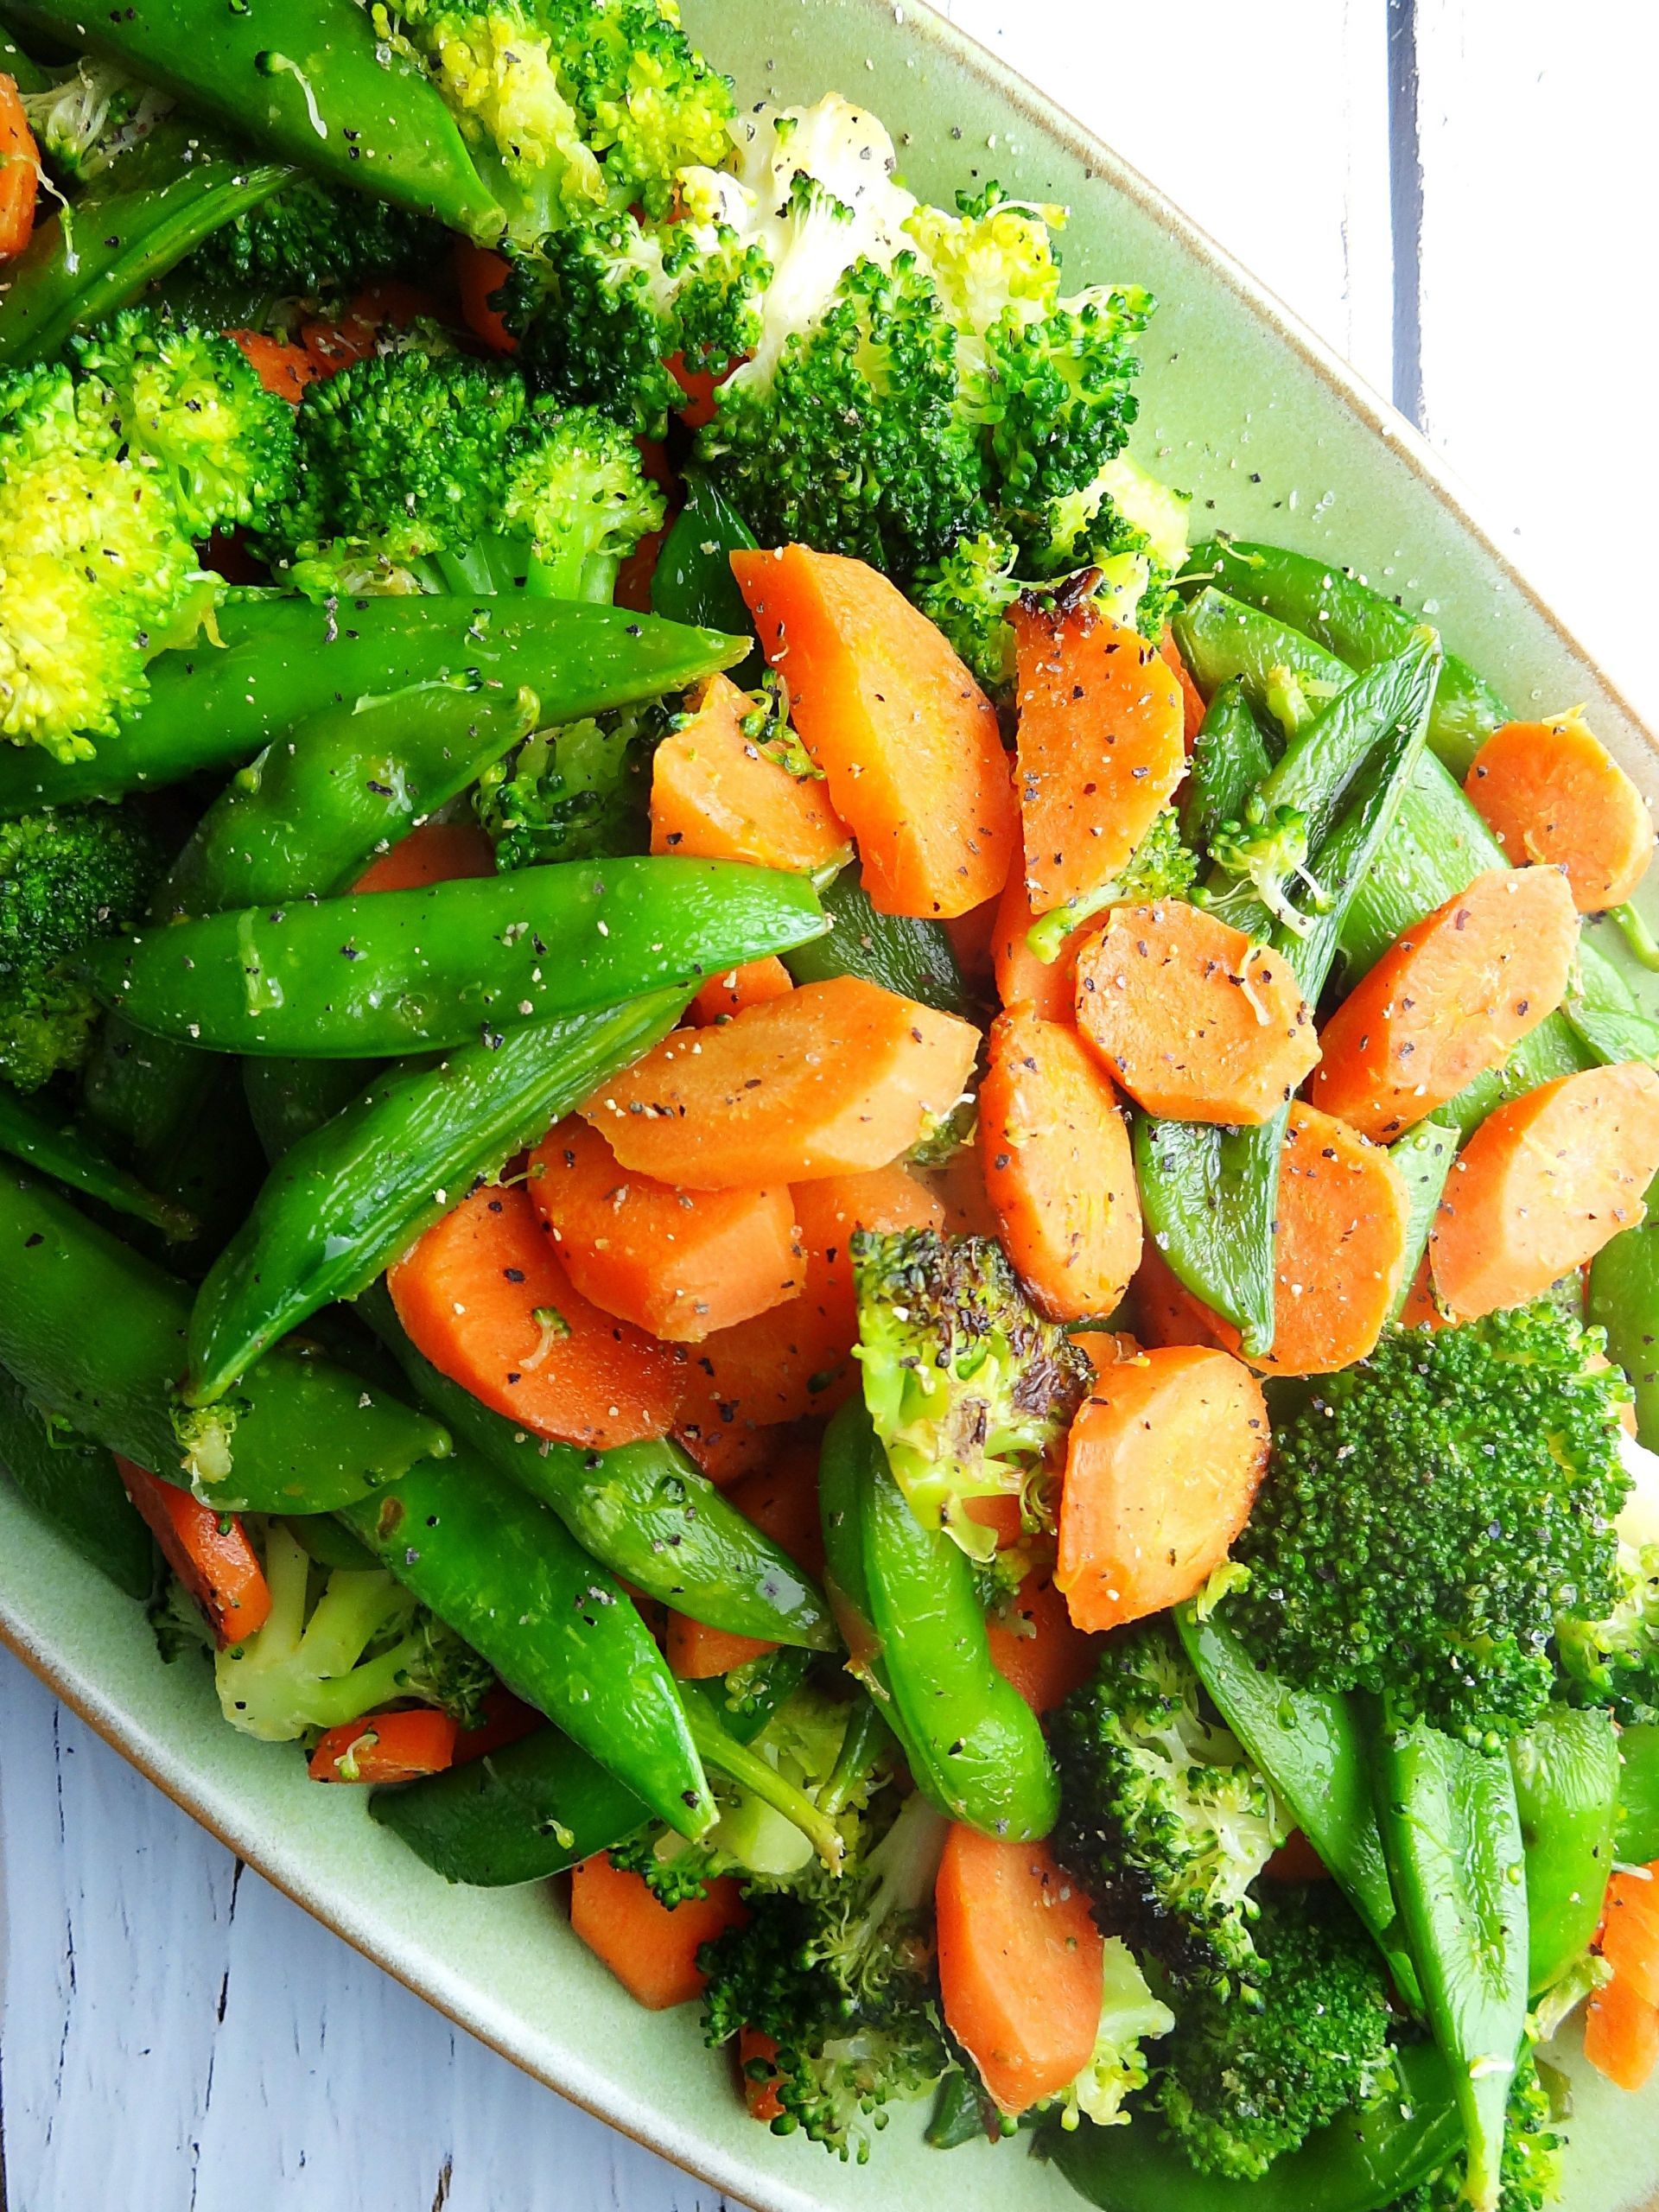 Vegetable Side Dishes Healthy  This simple and easy side dish of sauteed veggies is